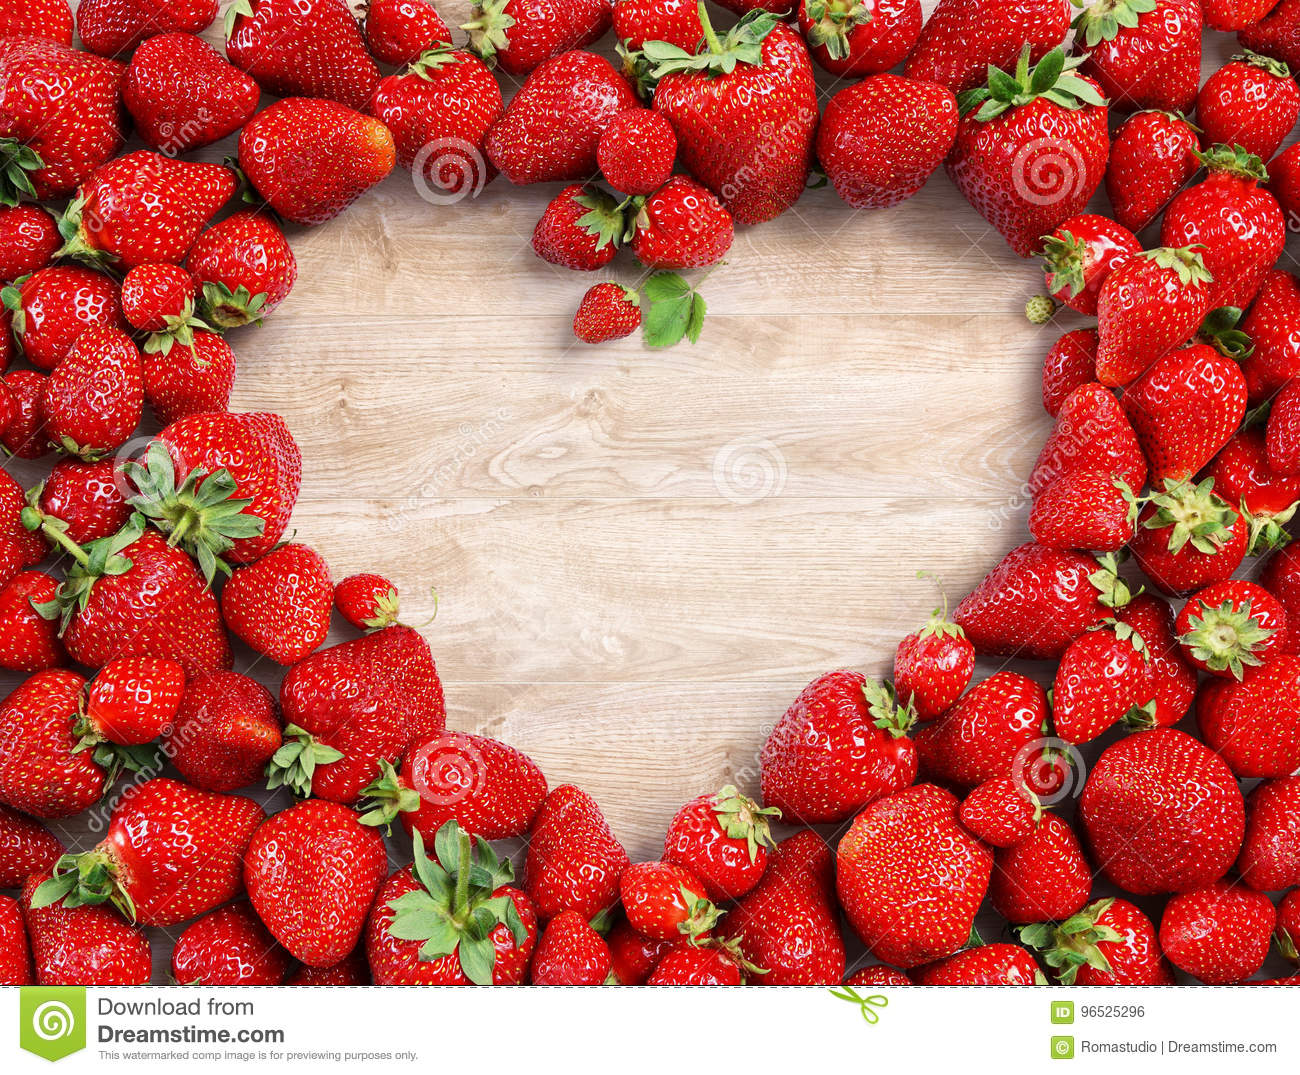 Heart shaped made of strawberry on wooden background.